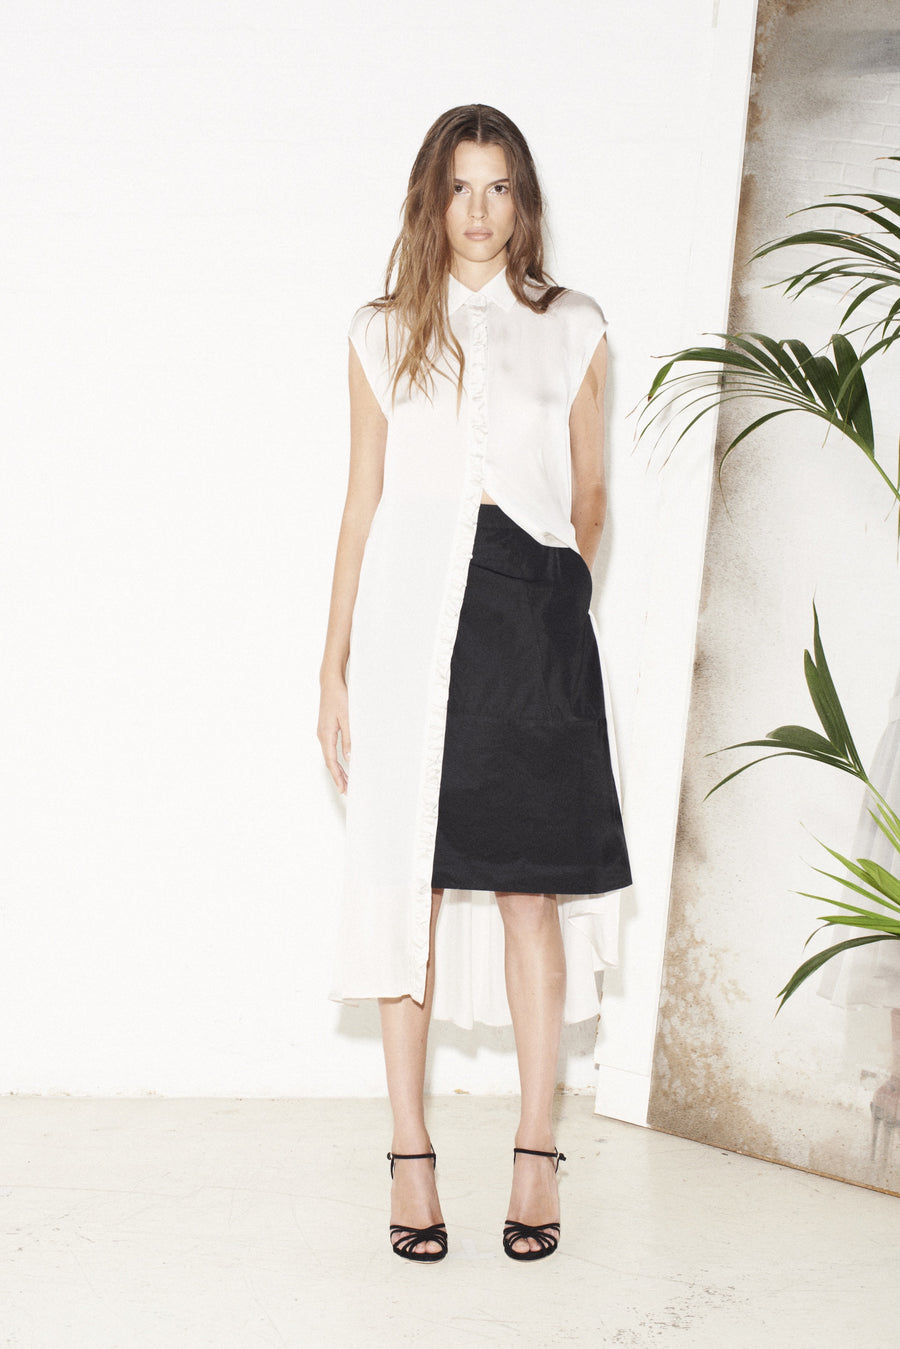 SS2013 / Look 7